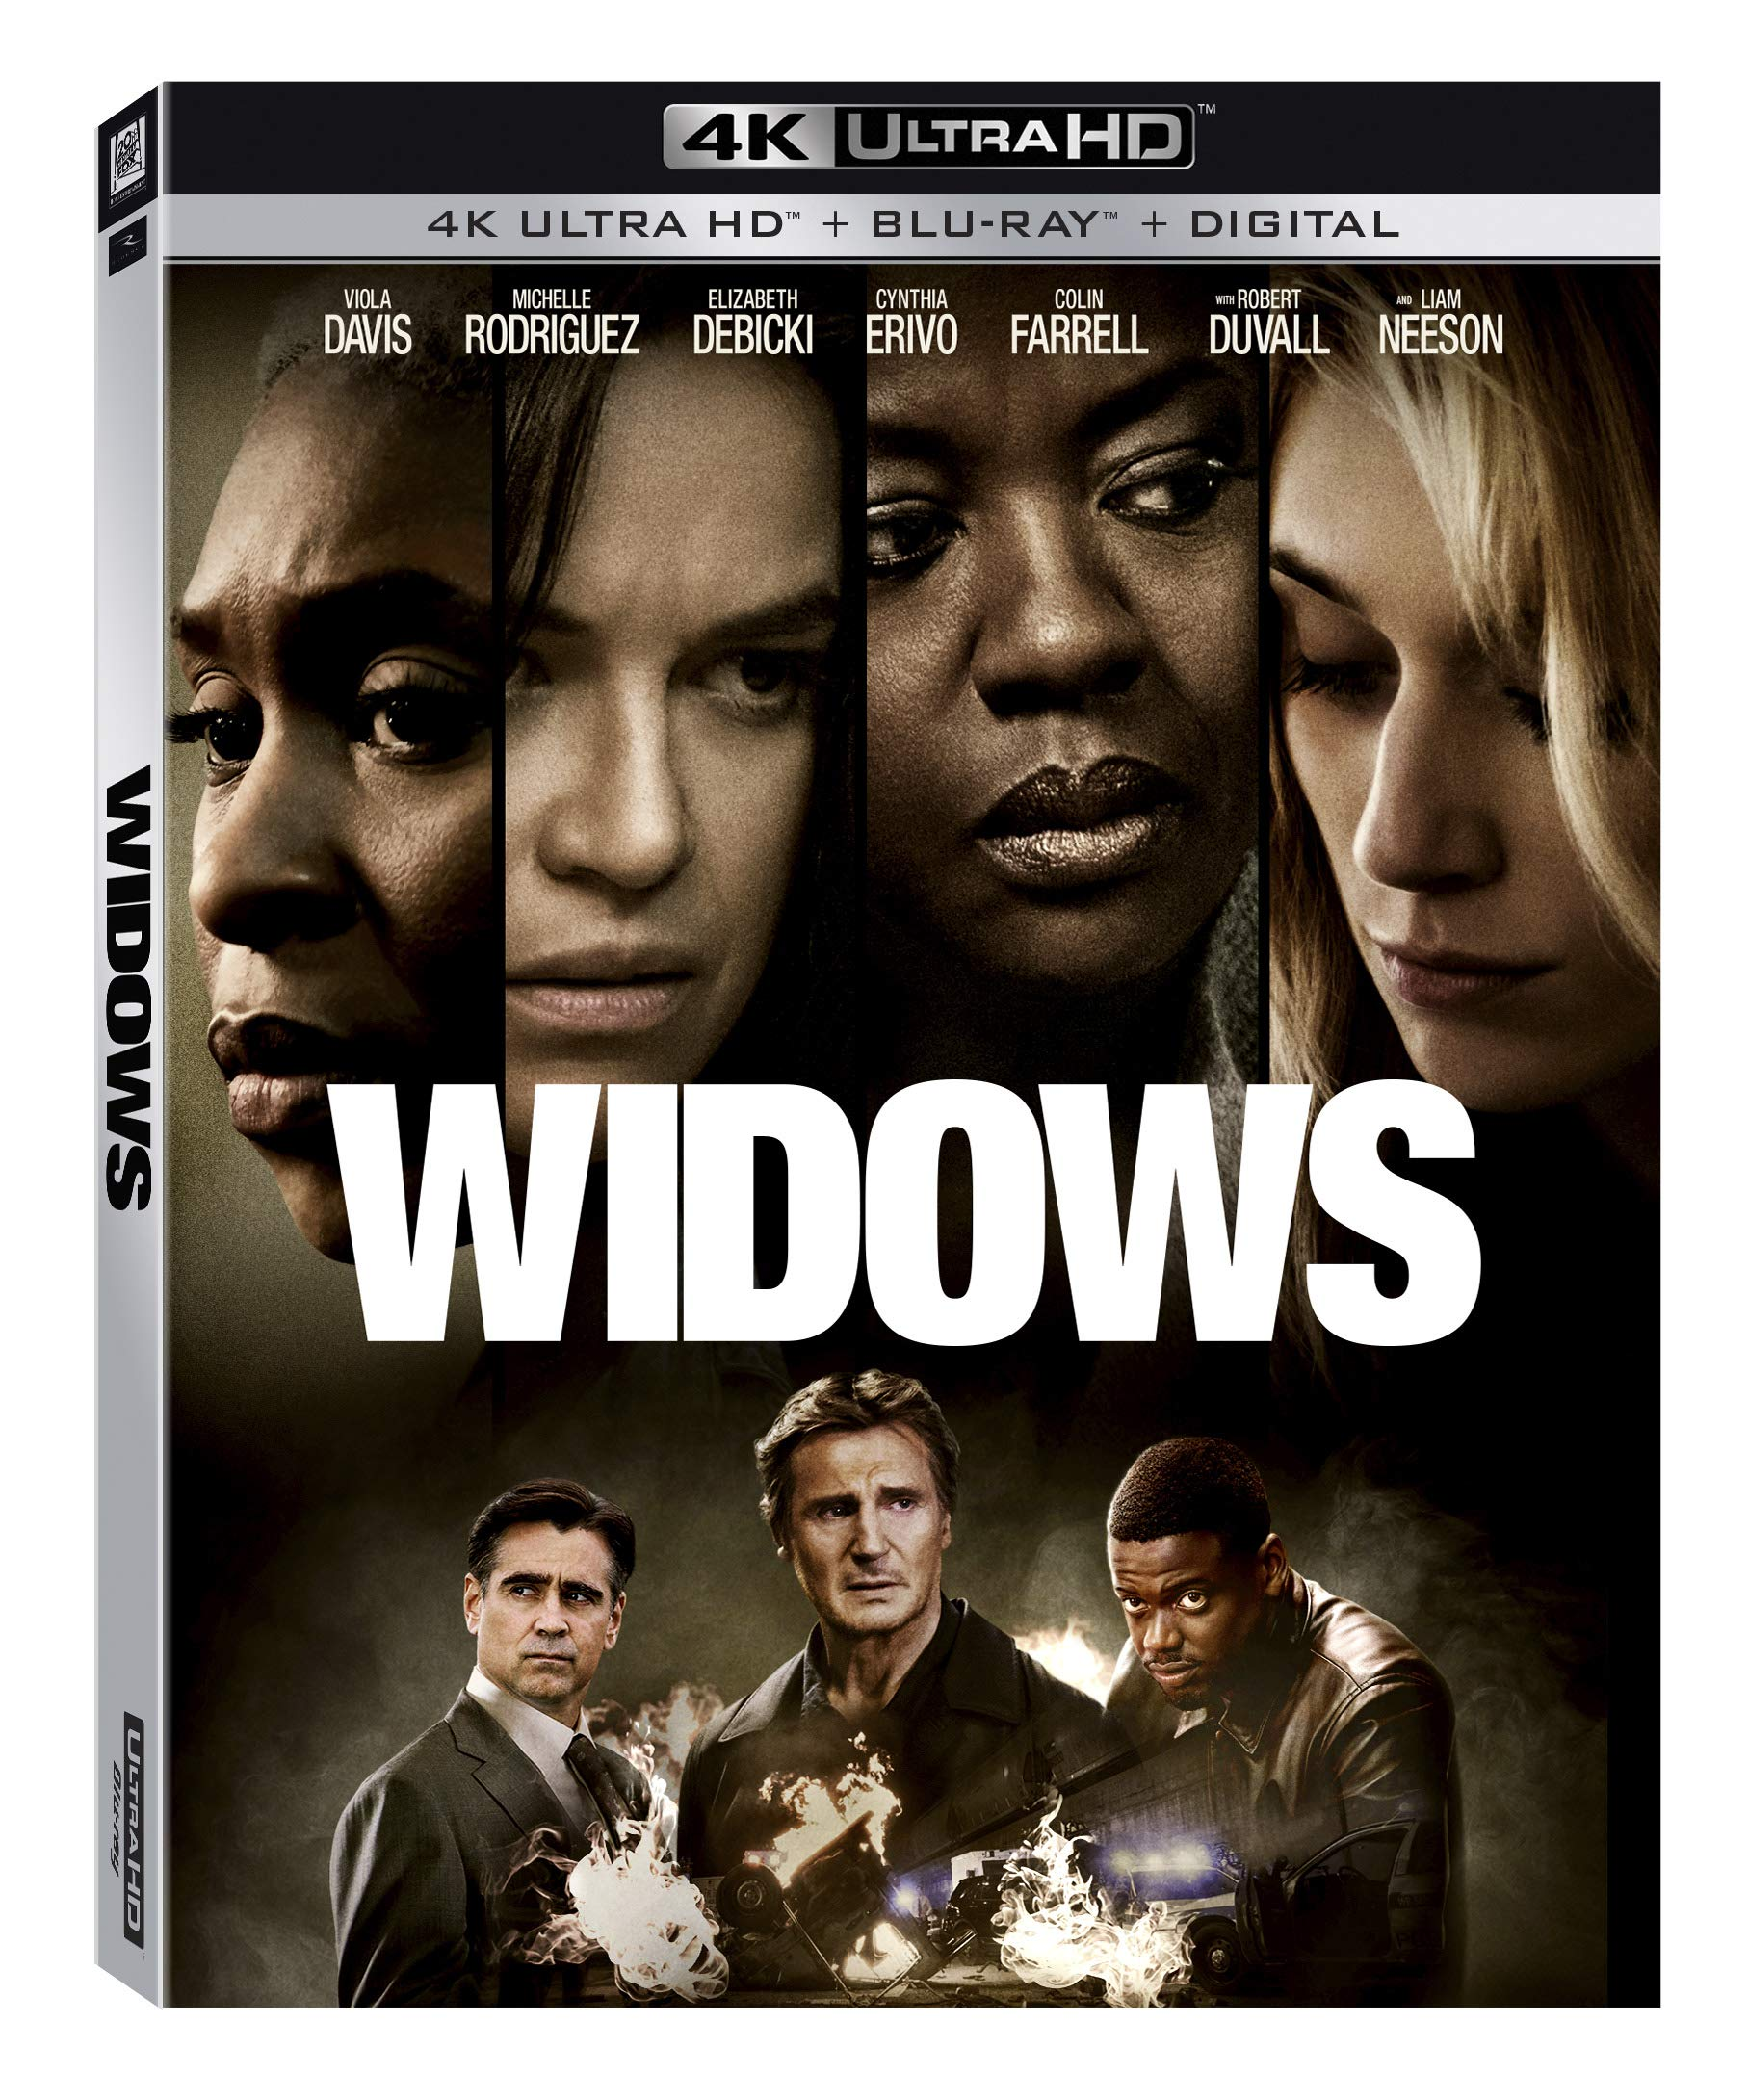 4K Blu-ray : Widows (With DVD, Digital Copy, Widescreen, Subtitled, Dolby)